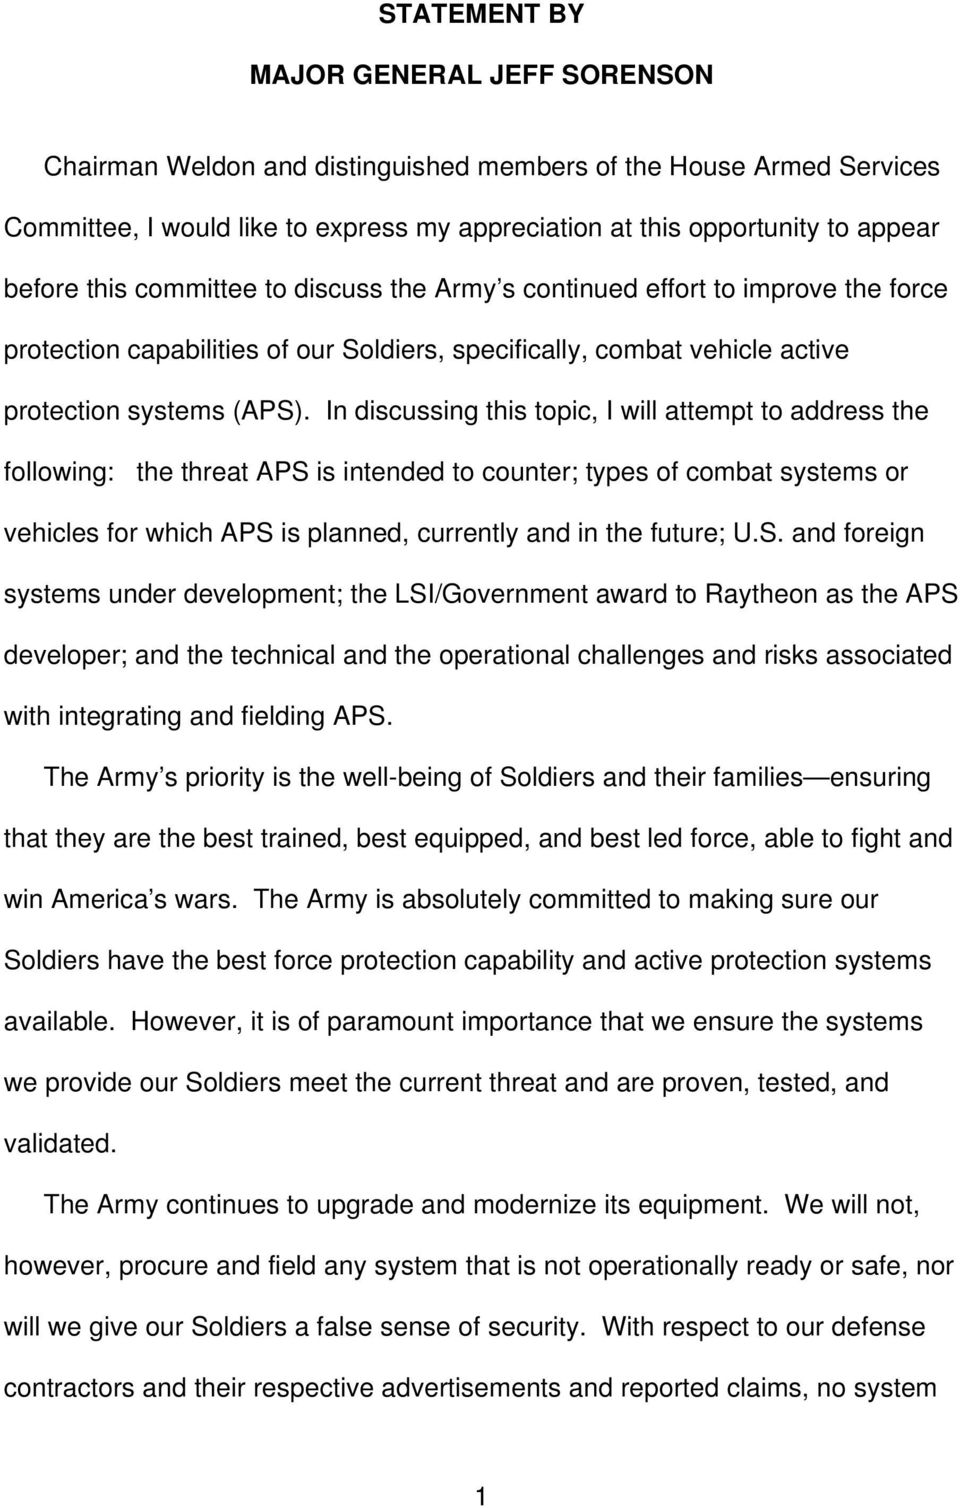 In discussing this topic, I will attempt to address the following: the threat APS is intended to counter; types of combat systems or vehicles for which APS is planned, currently and in the future; U.